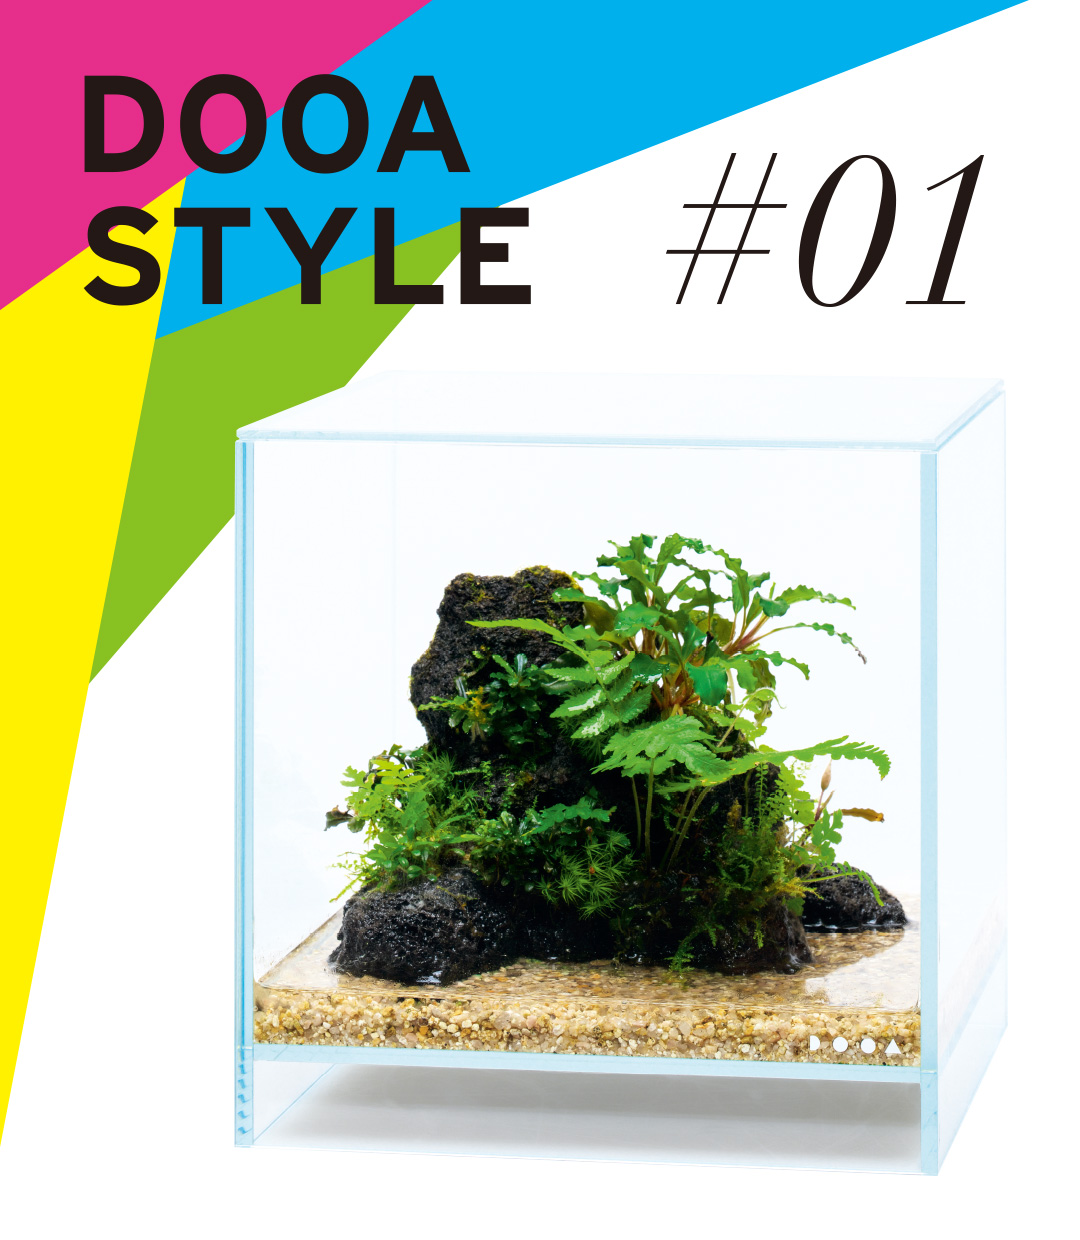 DOOA STYLE #1  Having an open feeling, even inside a tank